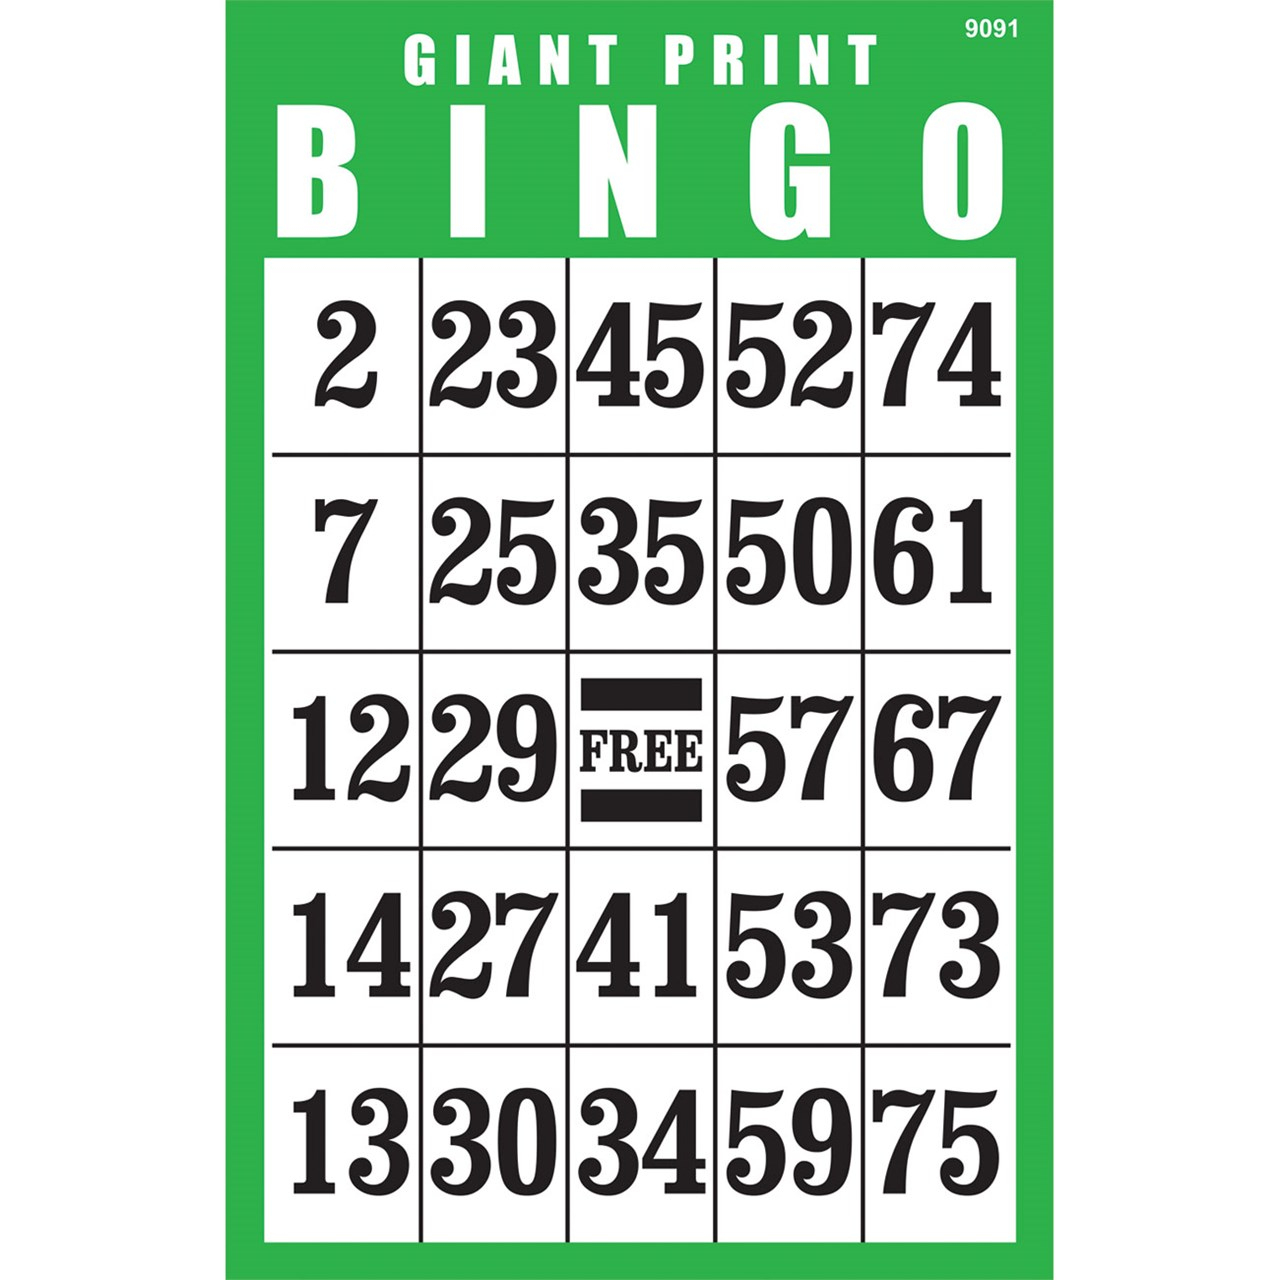 Giant Print Bingo Card- Green